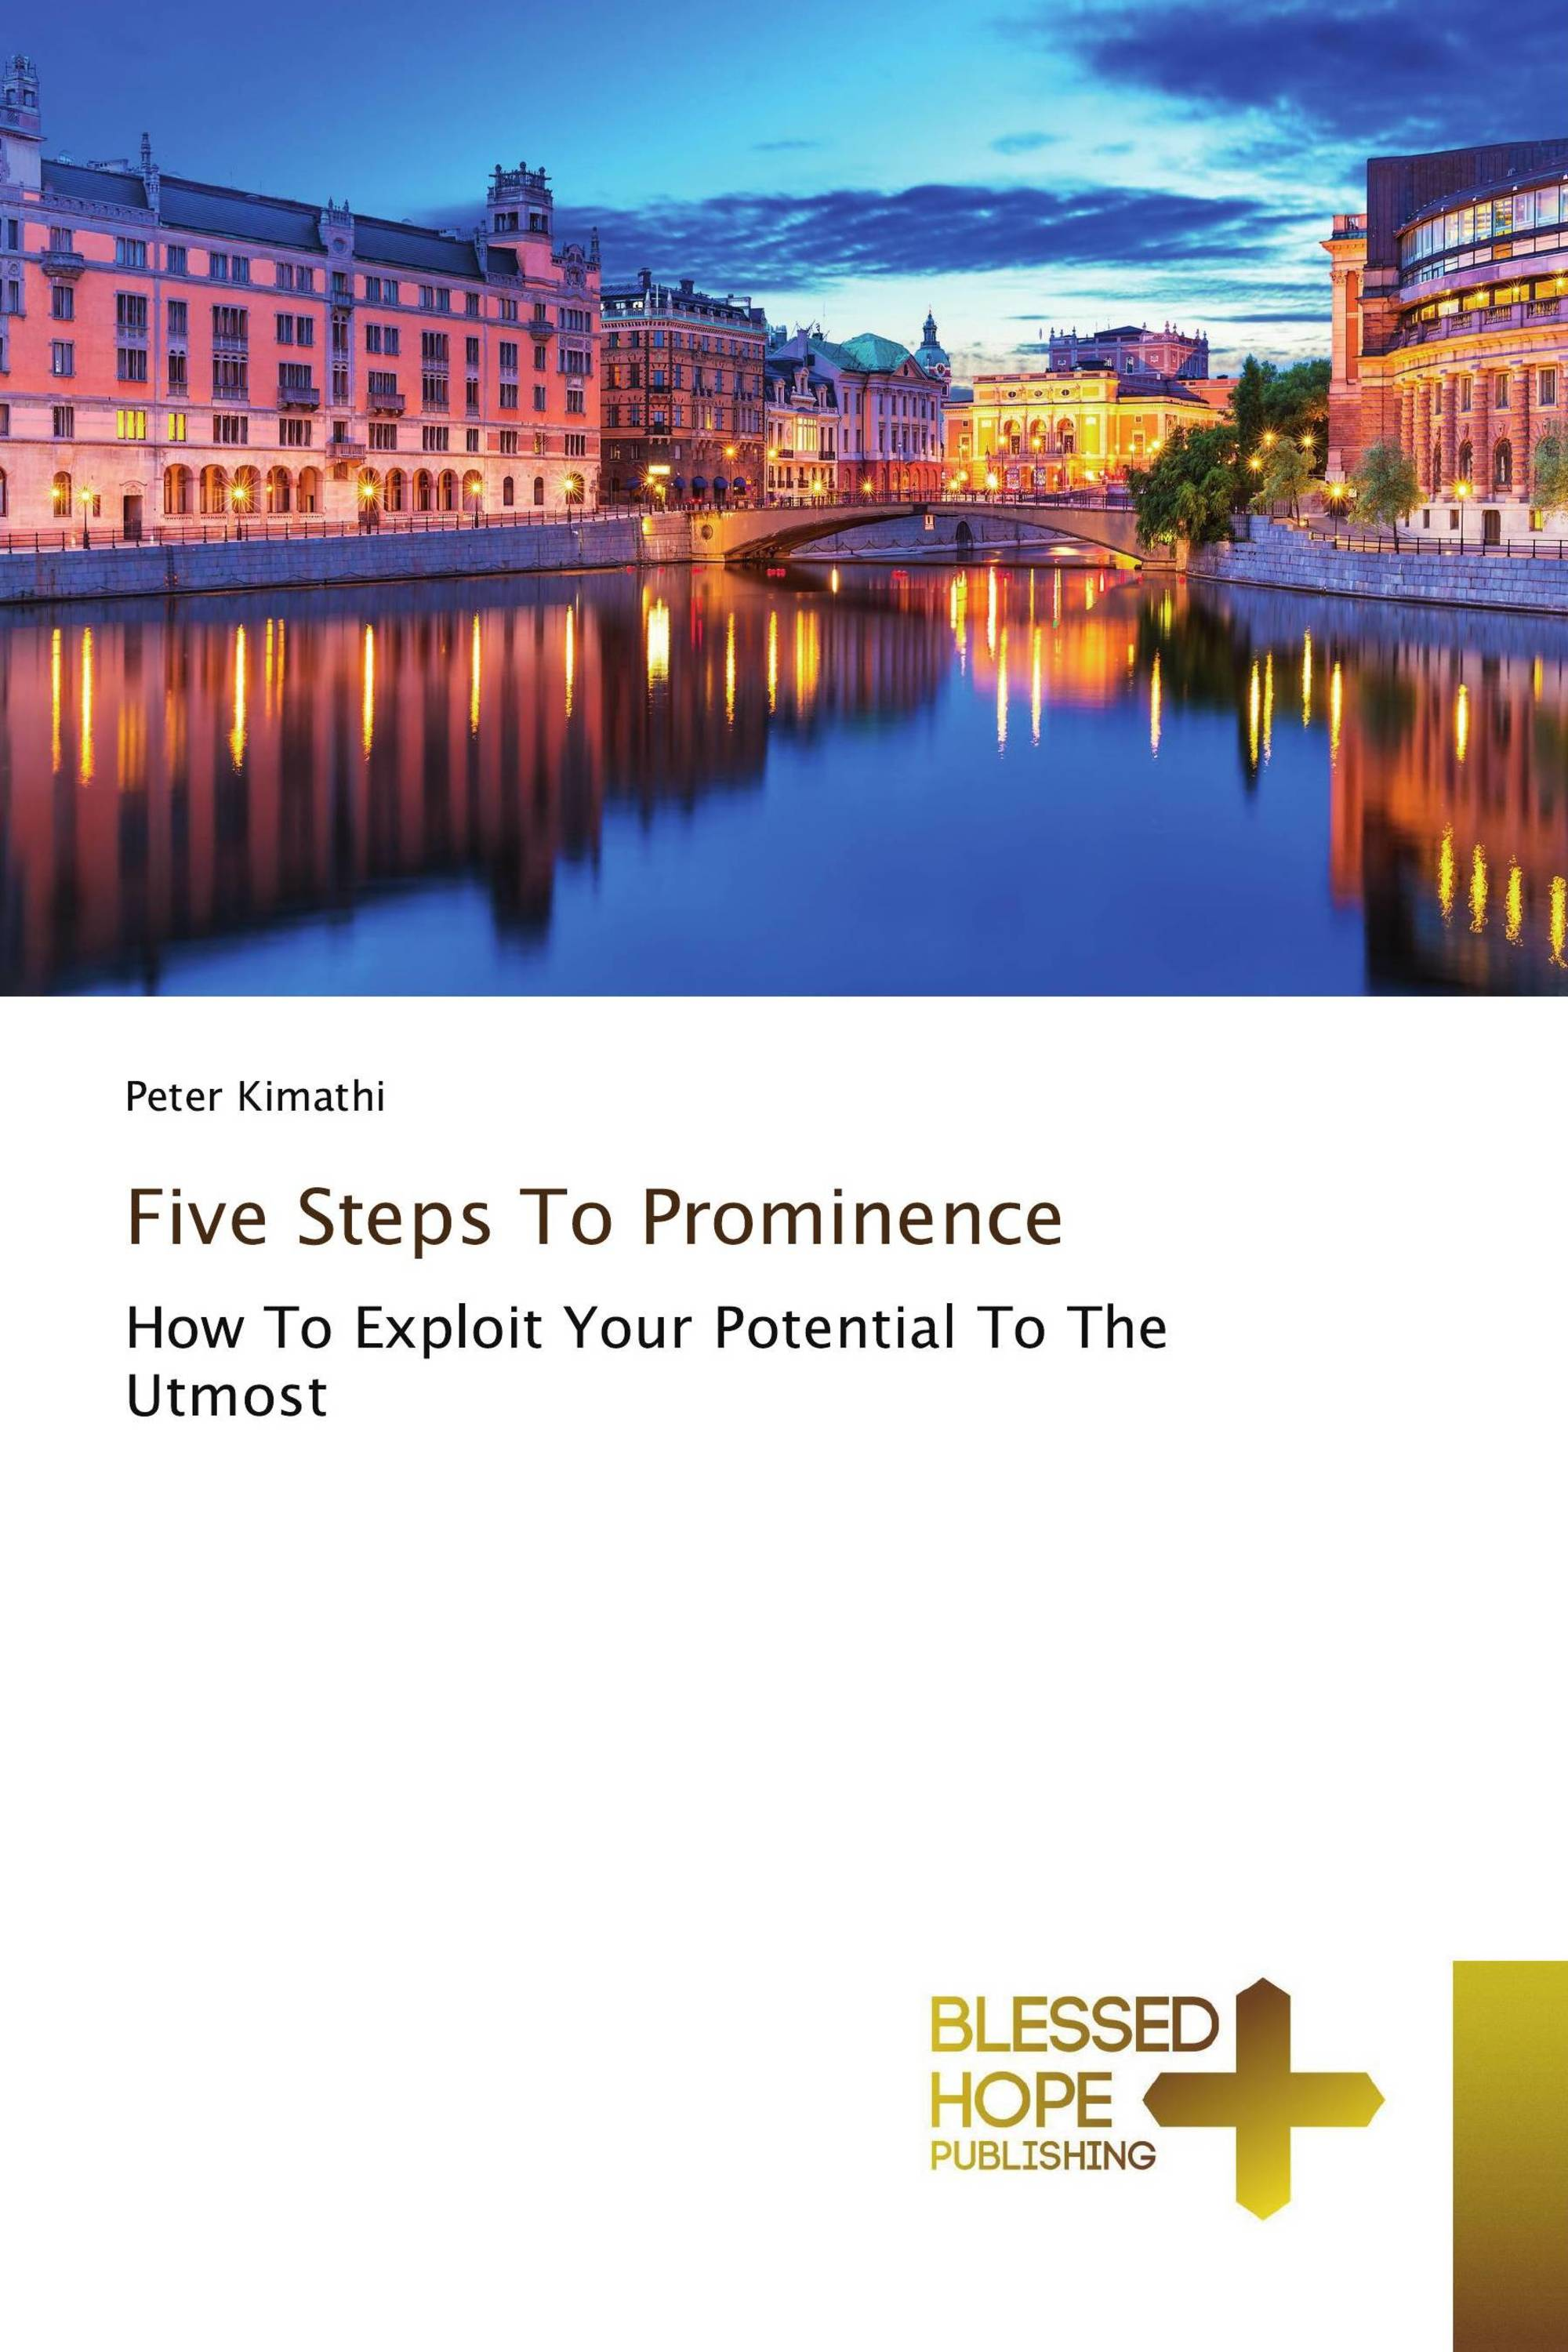 Five Steps To Prominence